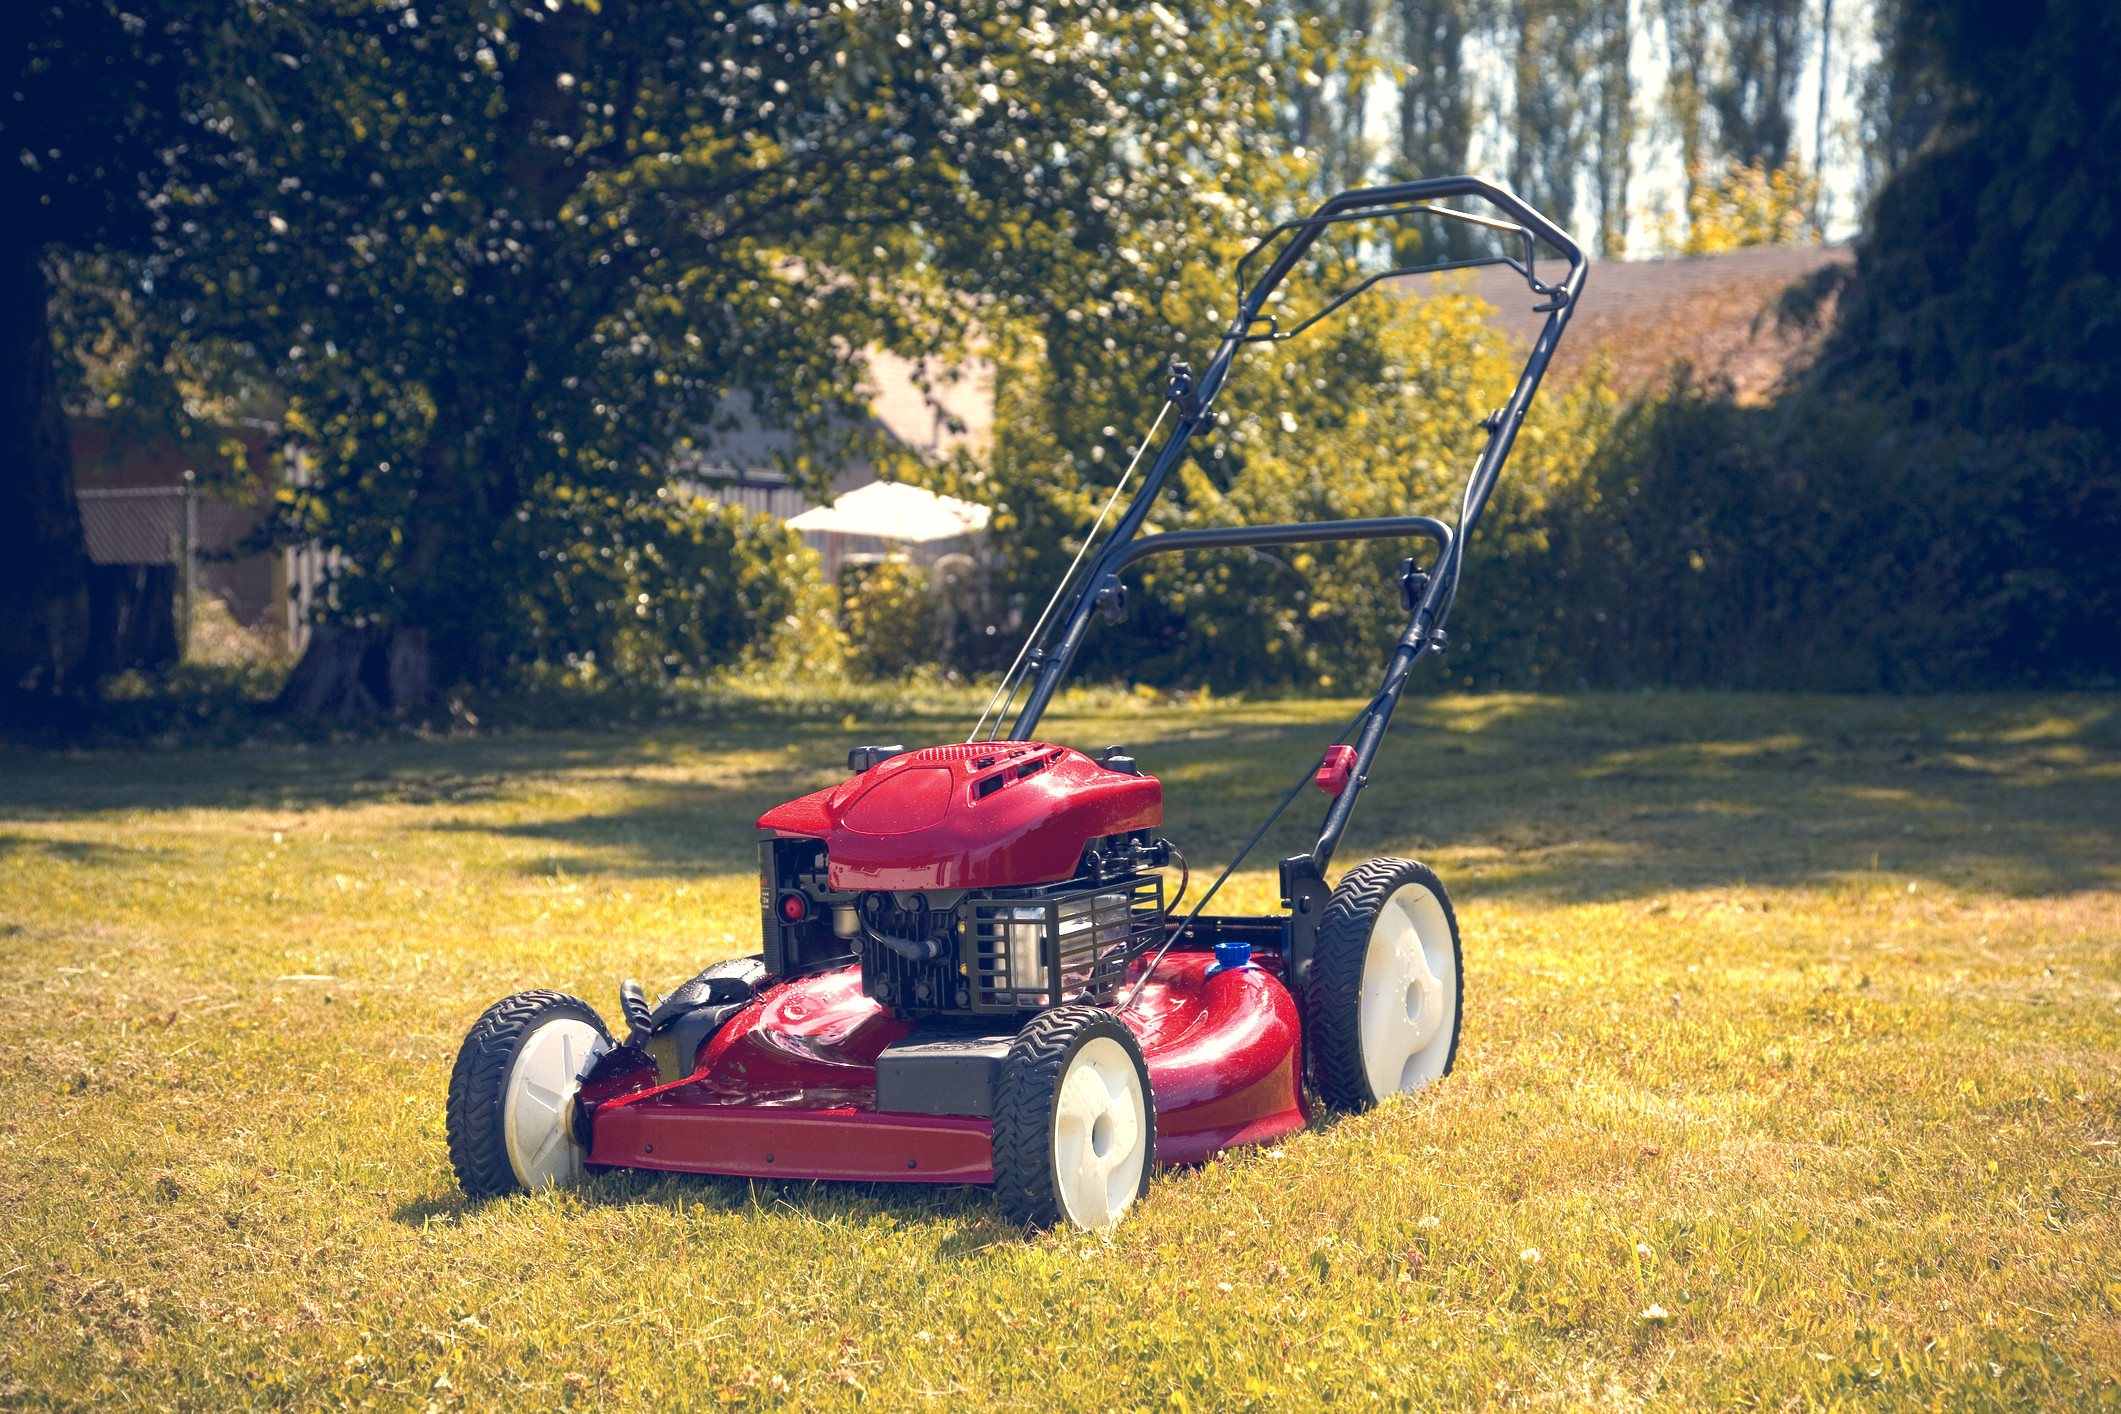 red lawn mower in yard